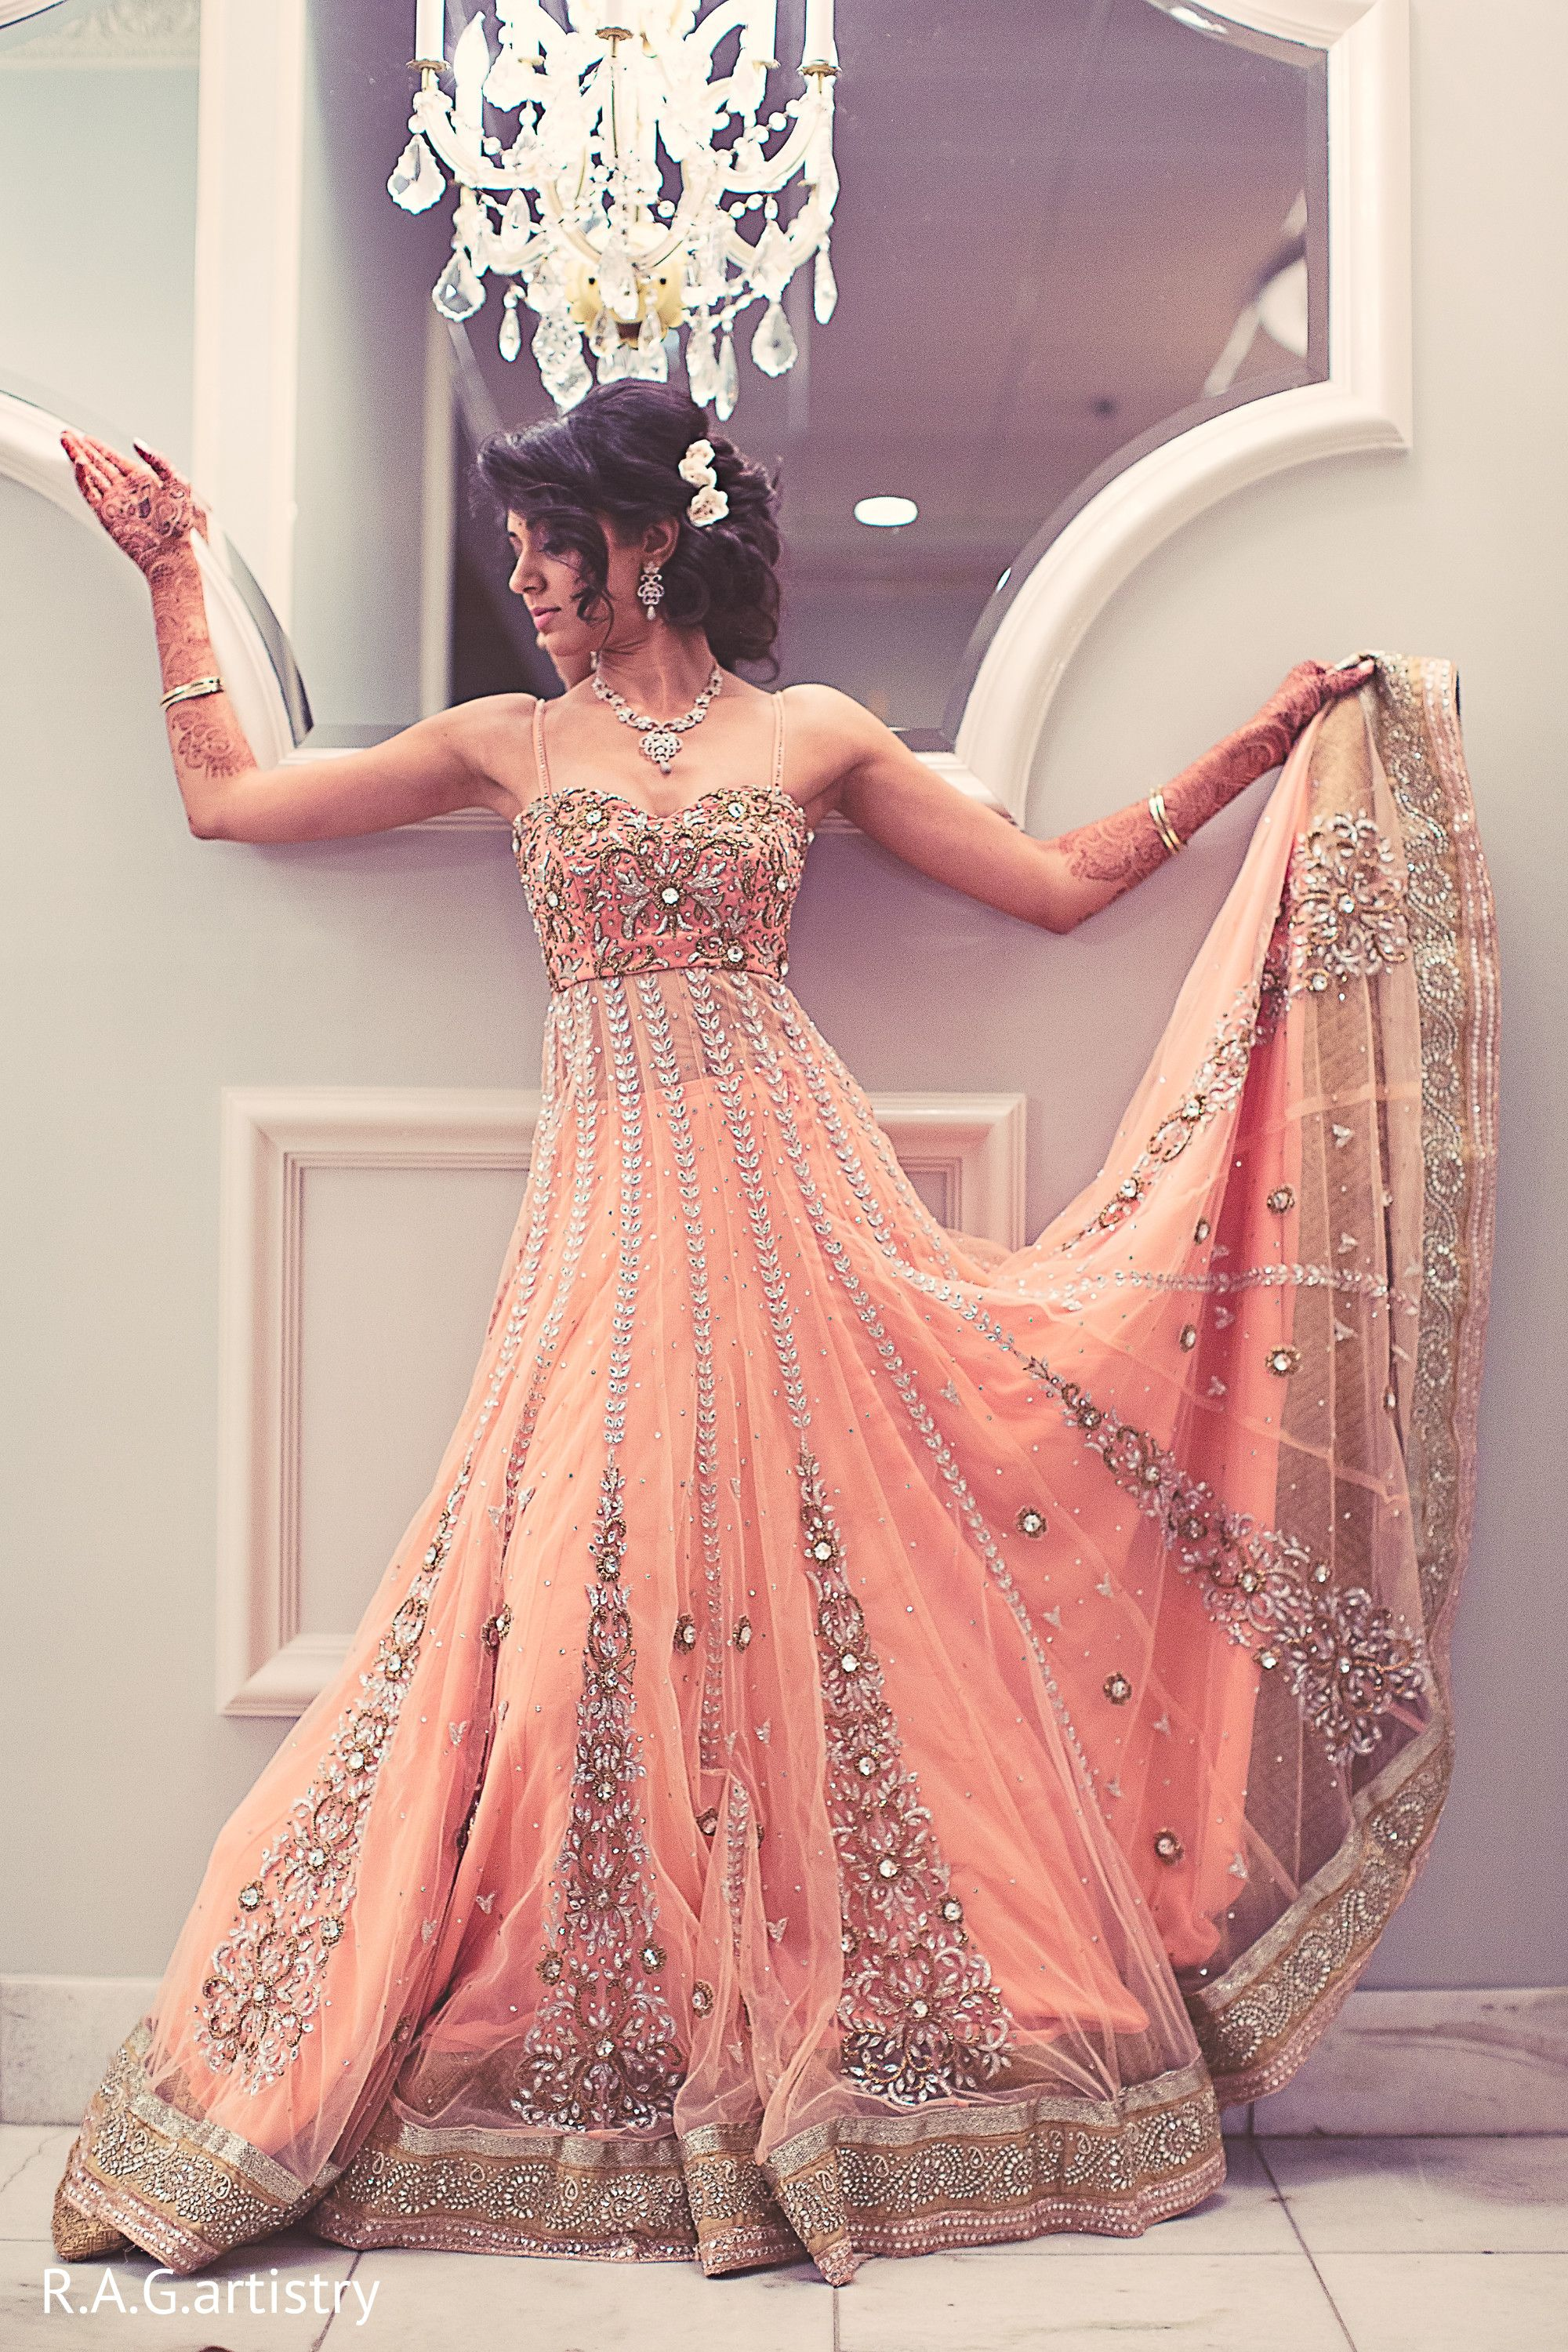 The couple at their reception. | dress | Pinterest | Recepciones ...